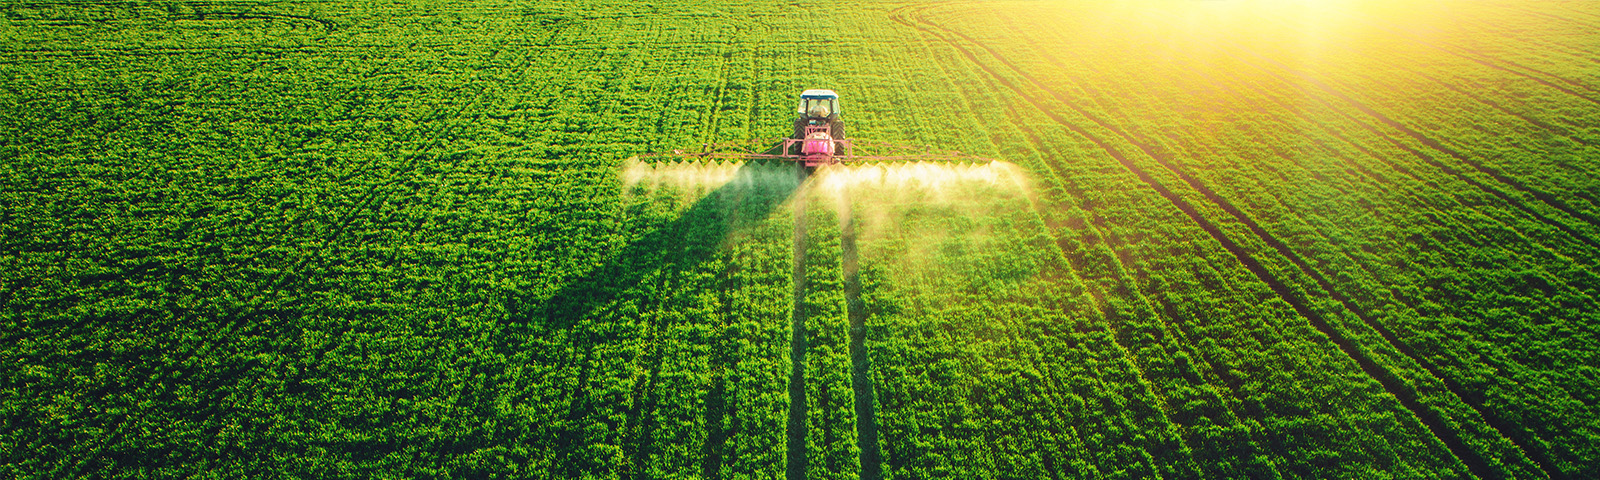 Tractor applying chemicals to field